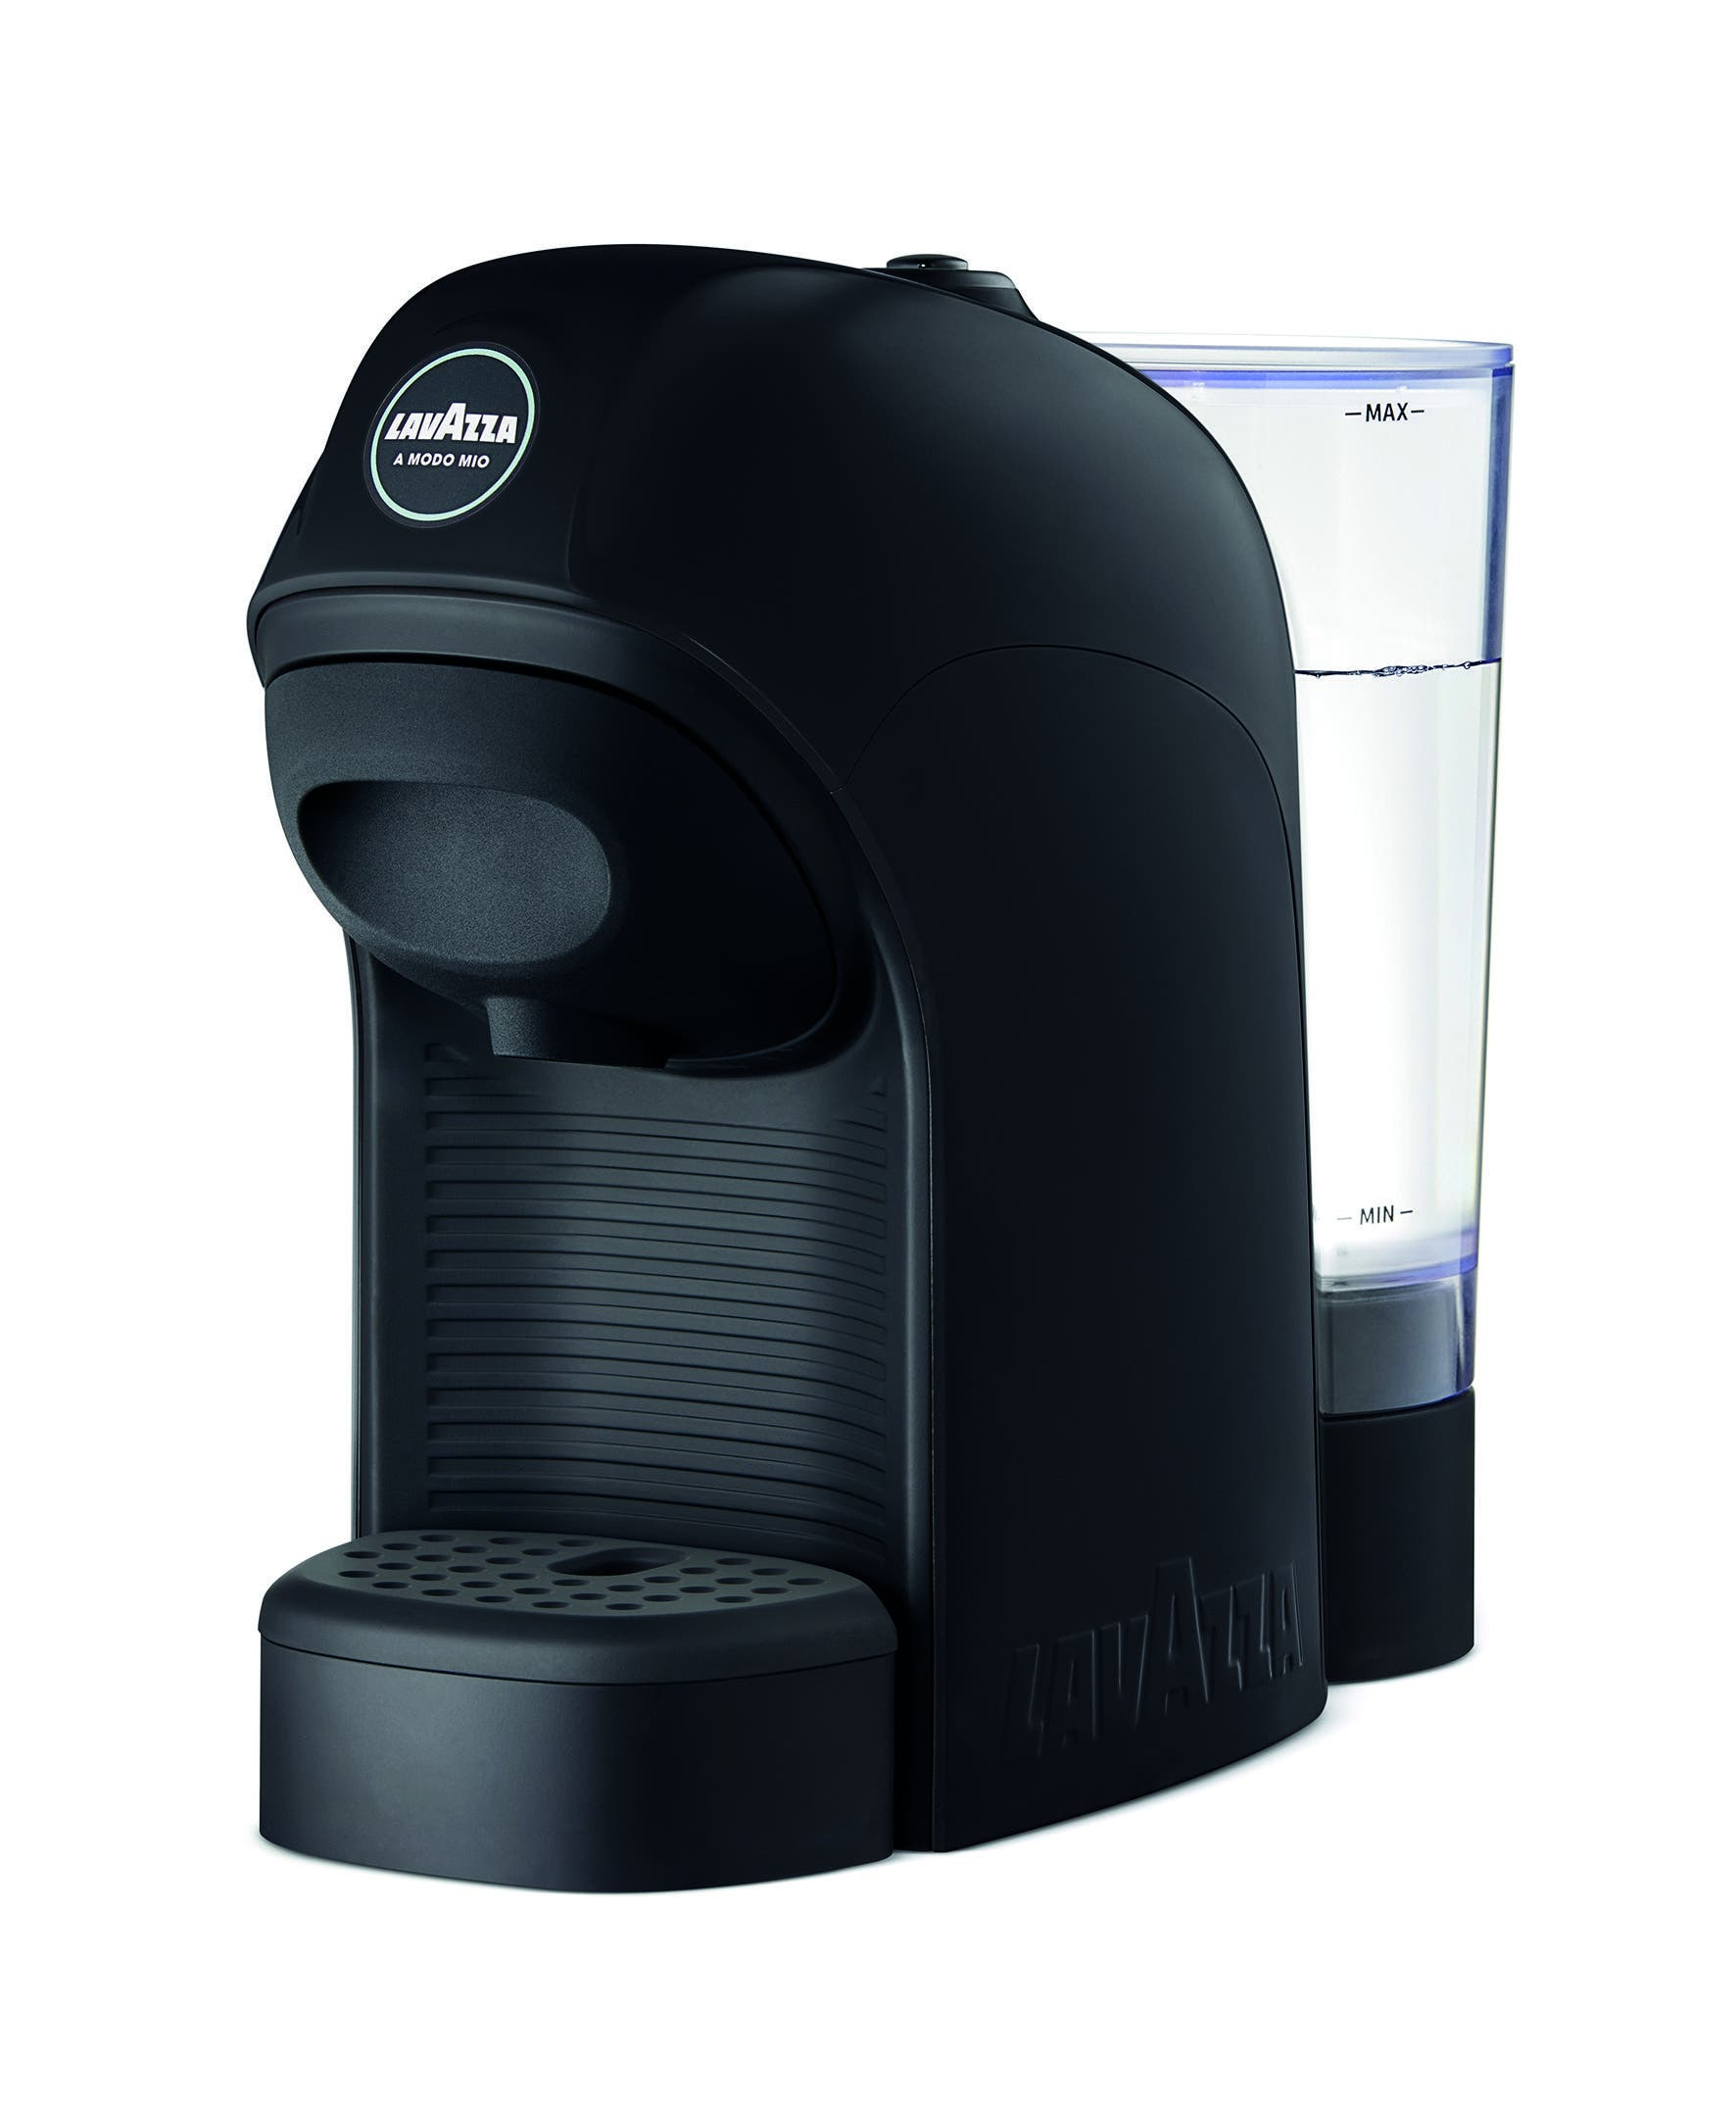 Lavazza Tiny Coffee Machine - Black (18000177) Espresso on the inside and cheerfulness on the outside, the Lavazza Tiny Coffee Machine will liven up your coffee corner. With tiny coffee machine in the house, every espresso is a good opportunity to be among friends.   On/Off button Easy loading Removable cup rest 9-minute automatic shut-off Transparent water tank Adjustable cup rack height Ready time 25 seconds